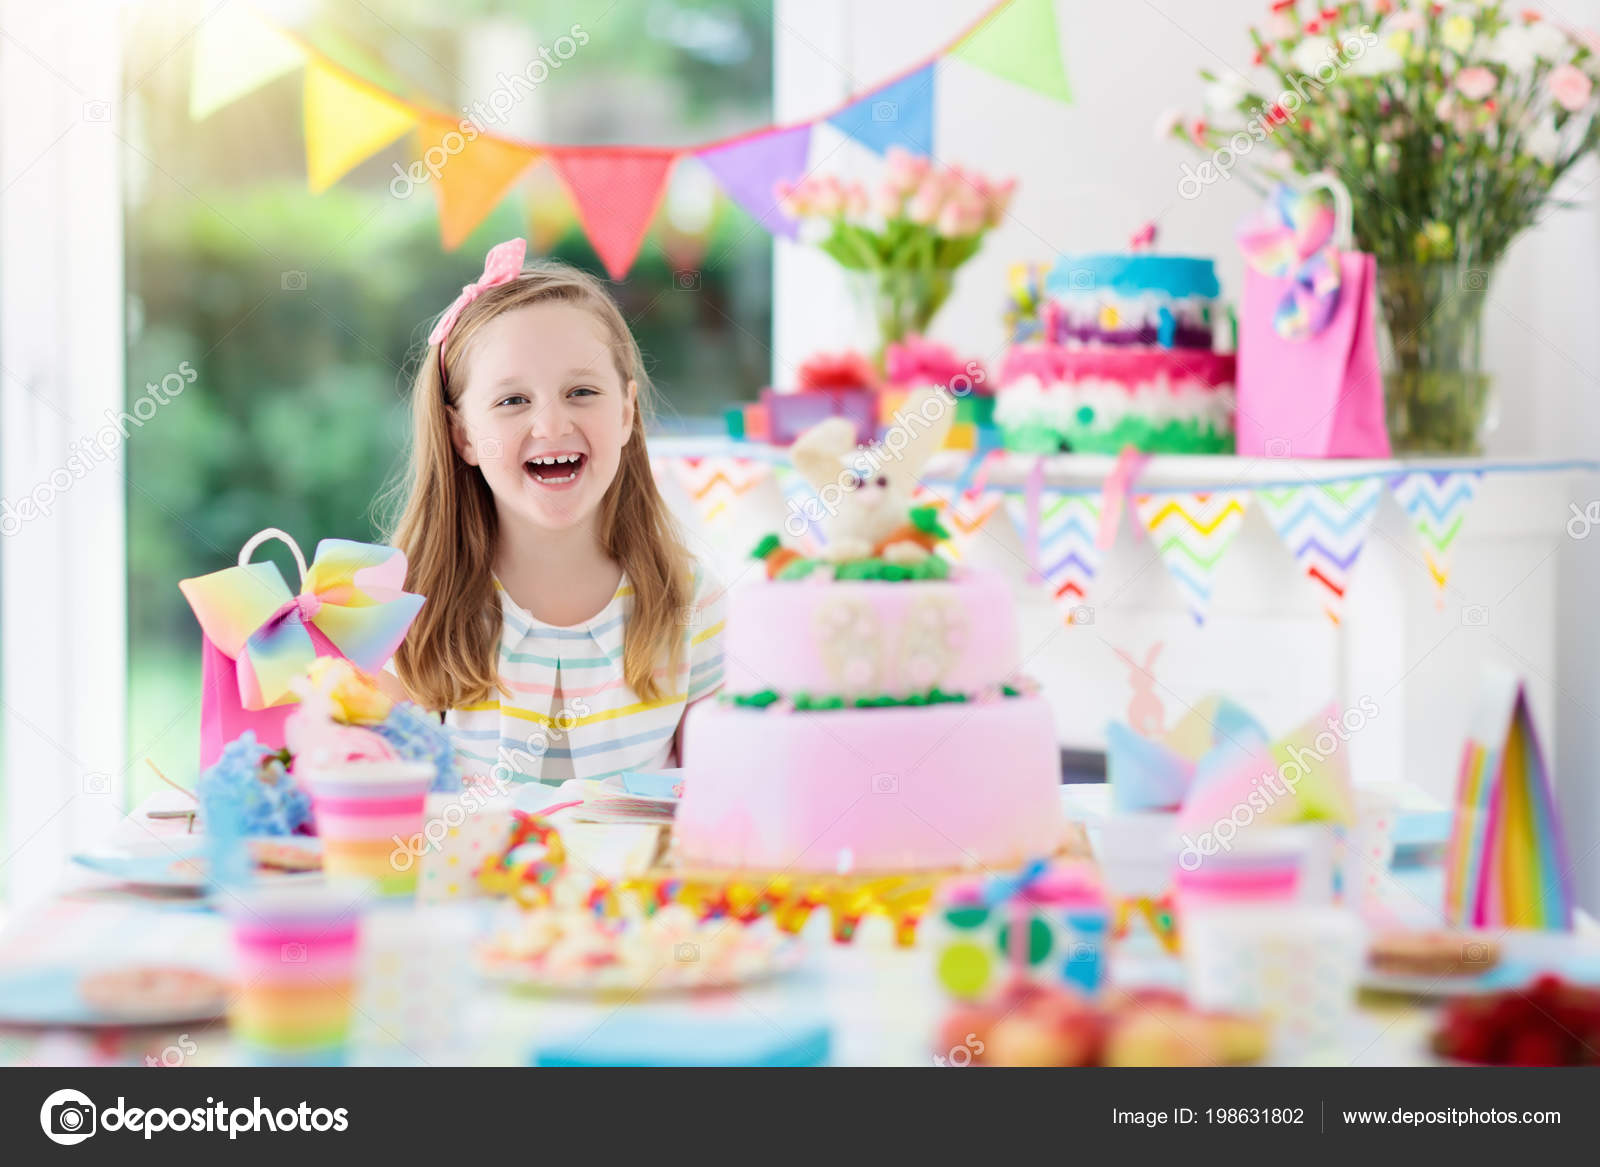 Kids Birthday Party With Colorful Rainbow Pastel Decoration And Bunny Layer Cake Little Girl Sweets Candy Fruit Balloons Banner At Festive